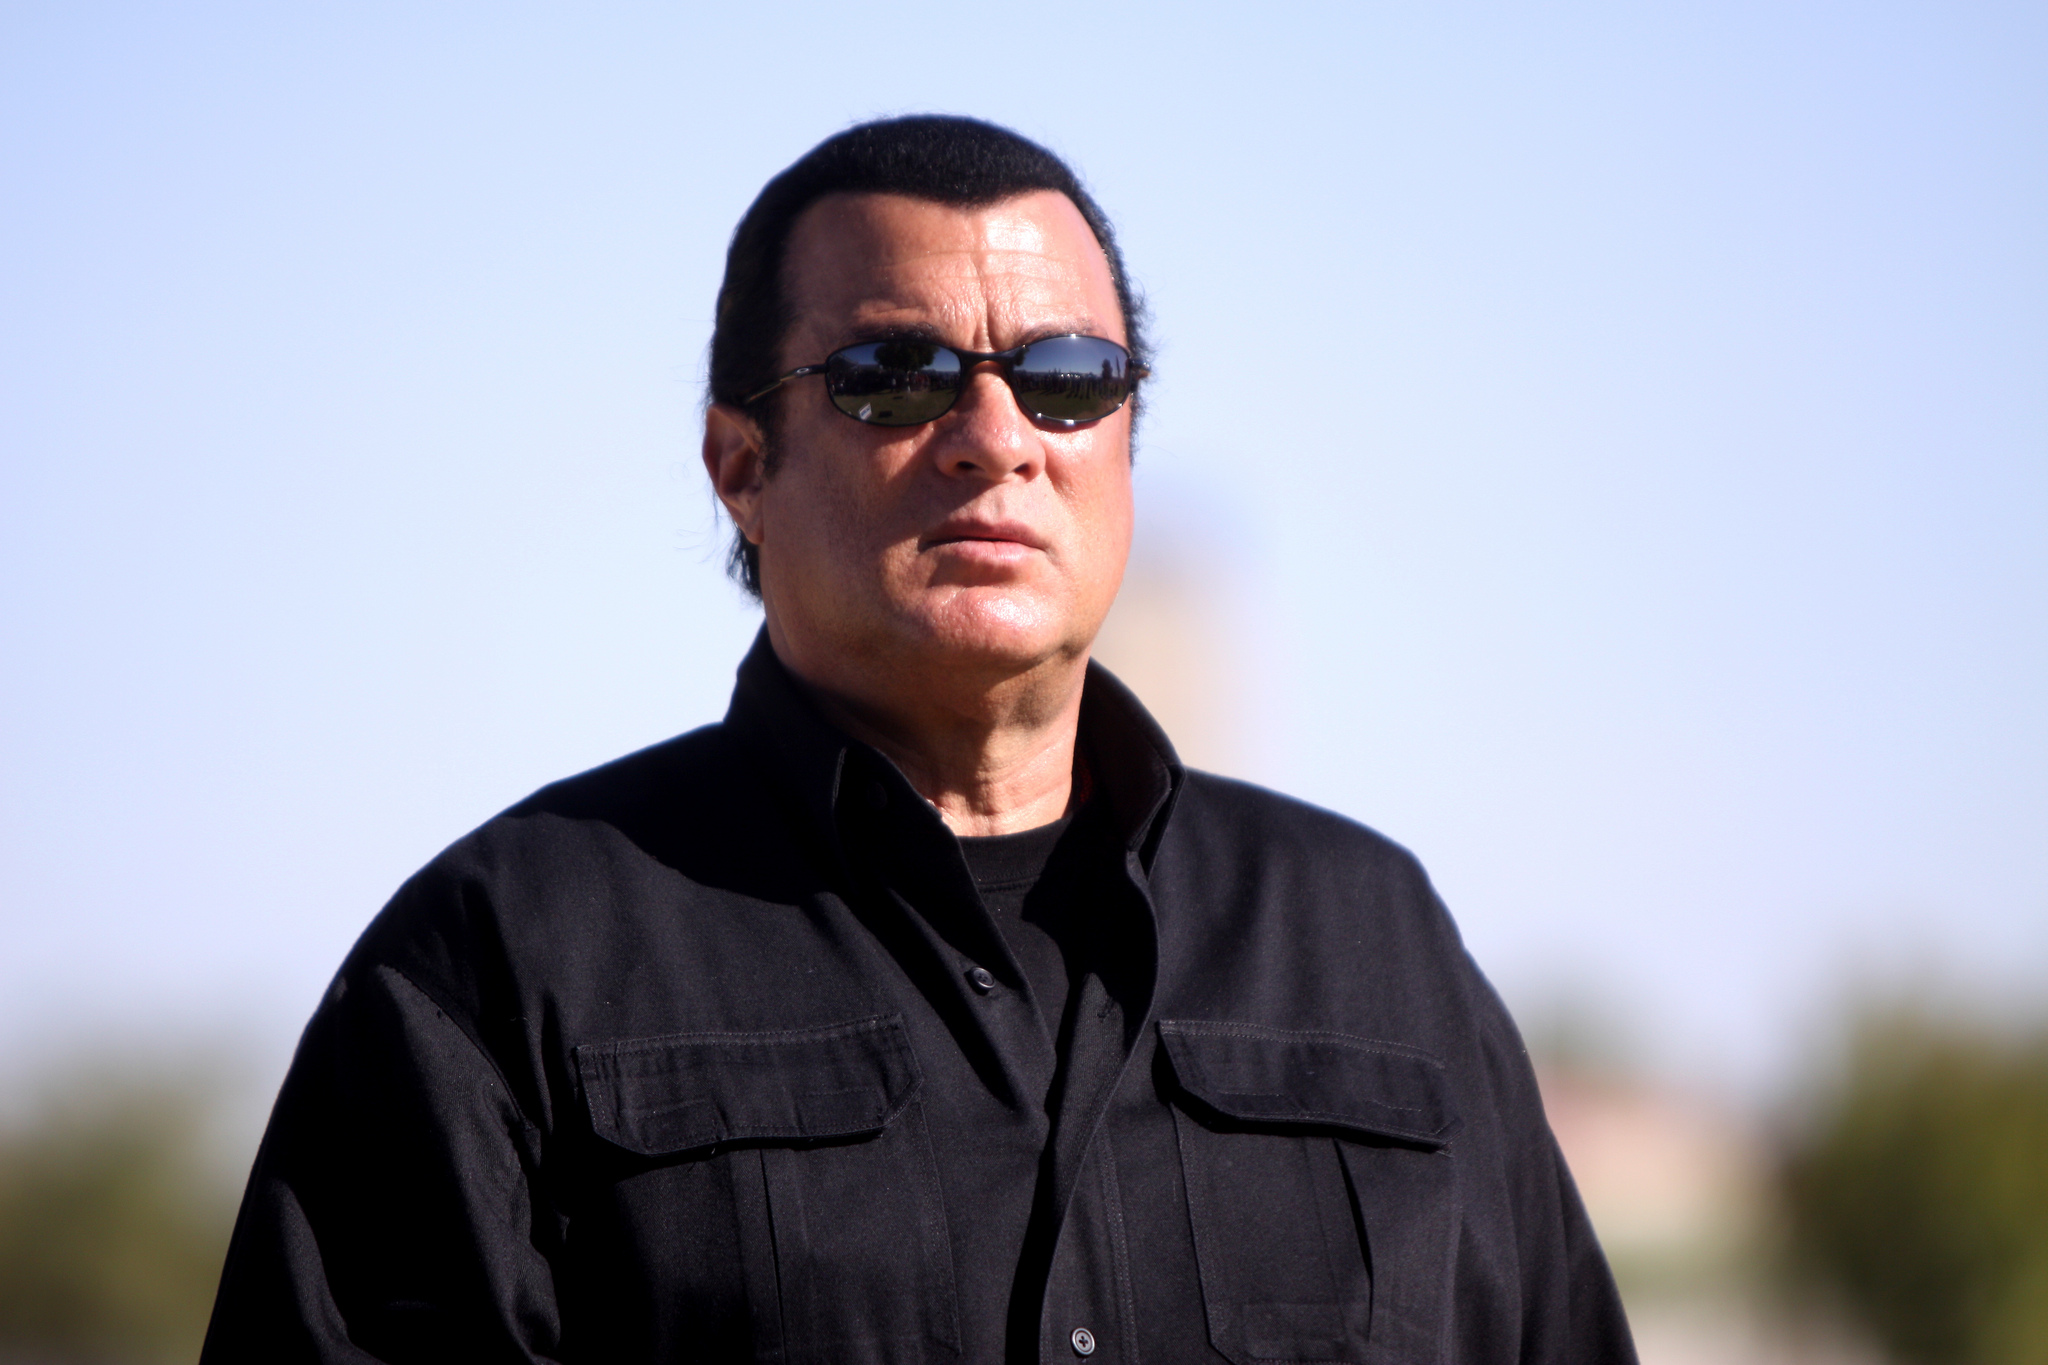 Steven Seagal Is Promoting 'Bitcoiin,' Which Has Nothing to Do With Bitcoin